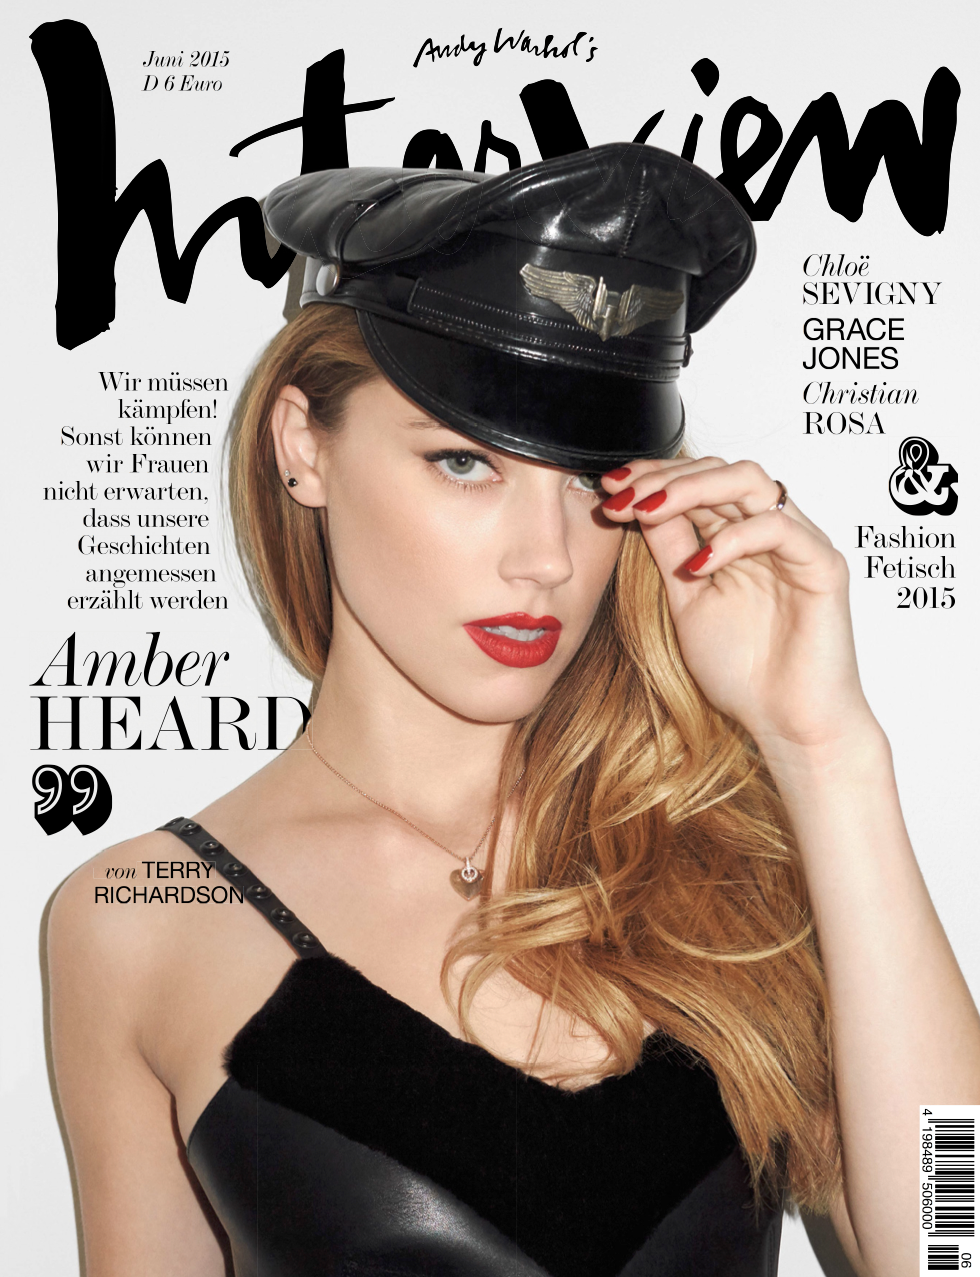 amberheard-interview-magazine-by-terryrichardson-02